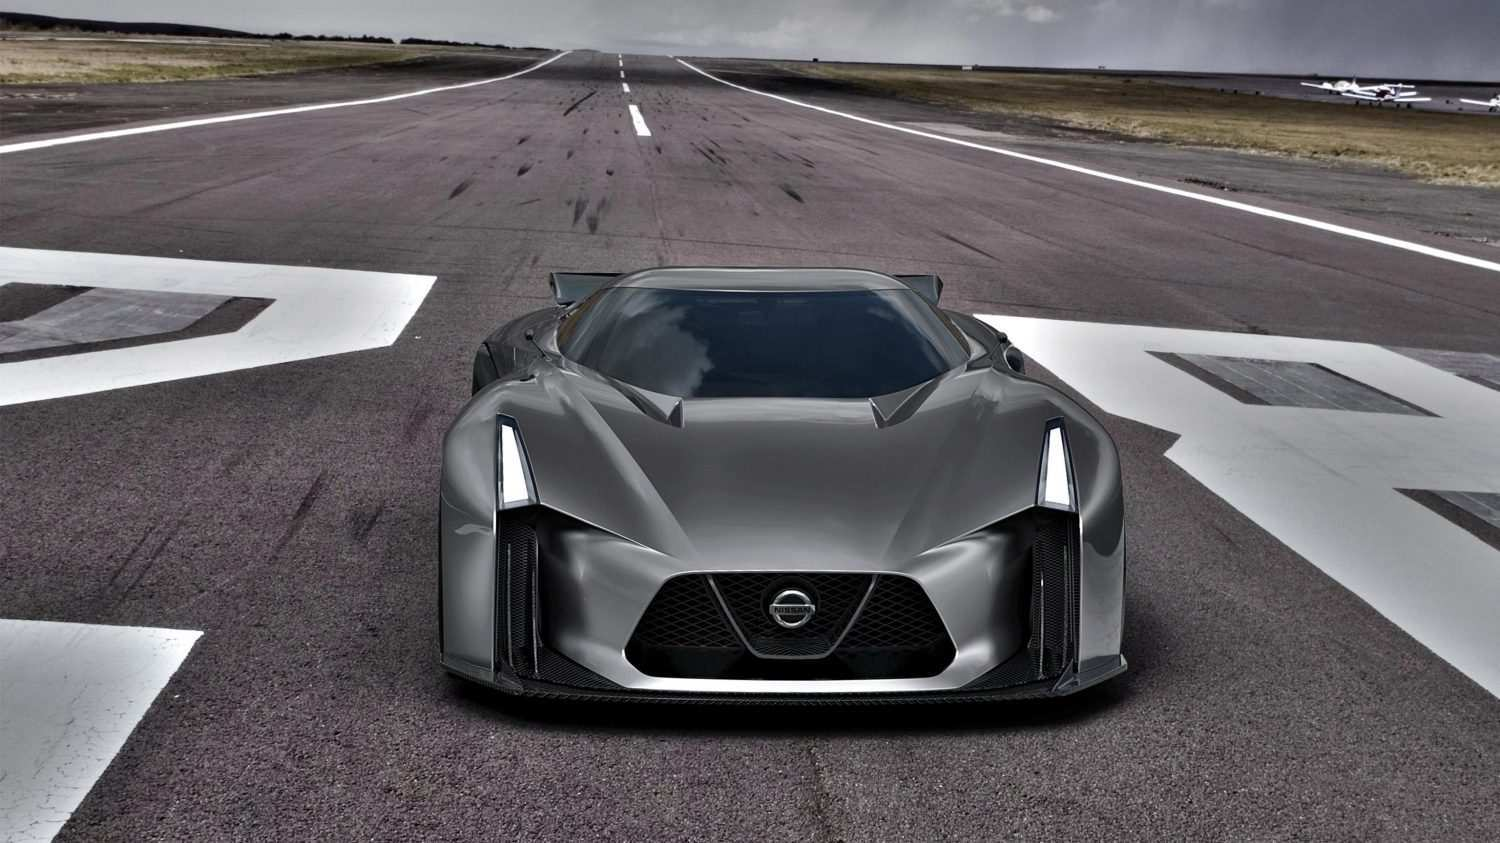 95 Concept of Nissan Turismo 2020 Pricing by Nissan Turismo 2020